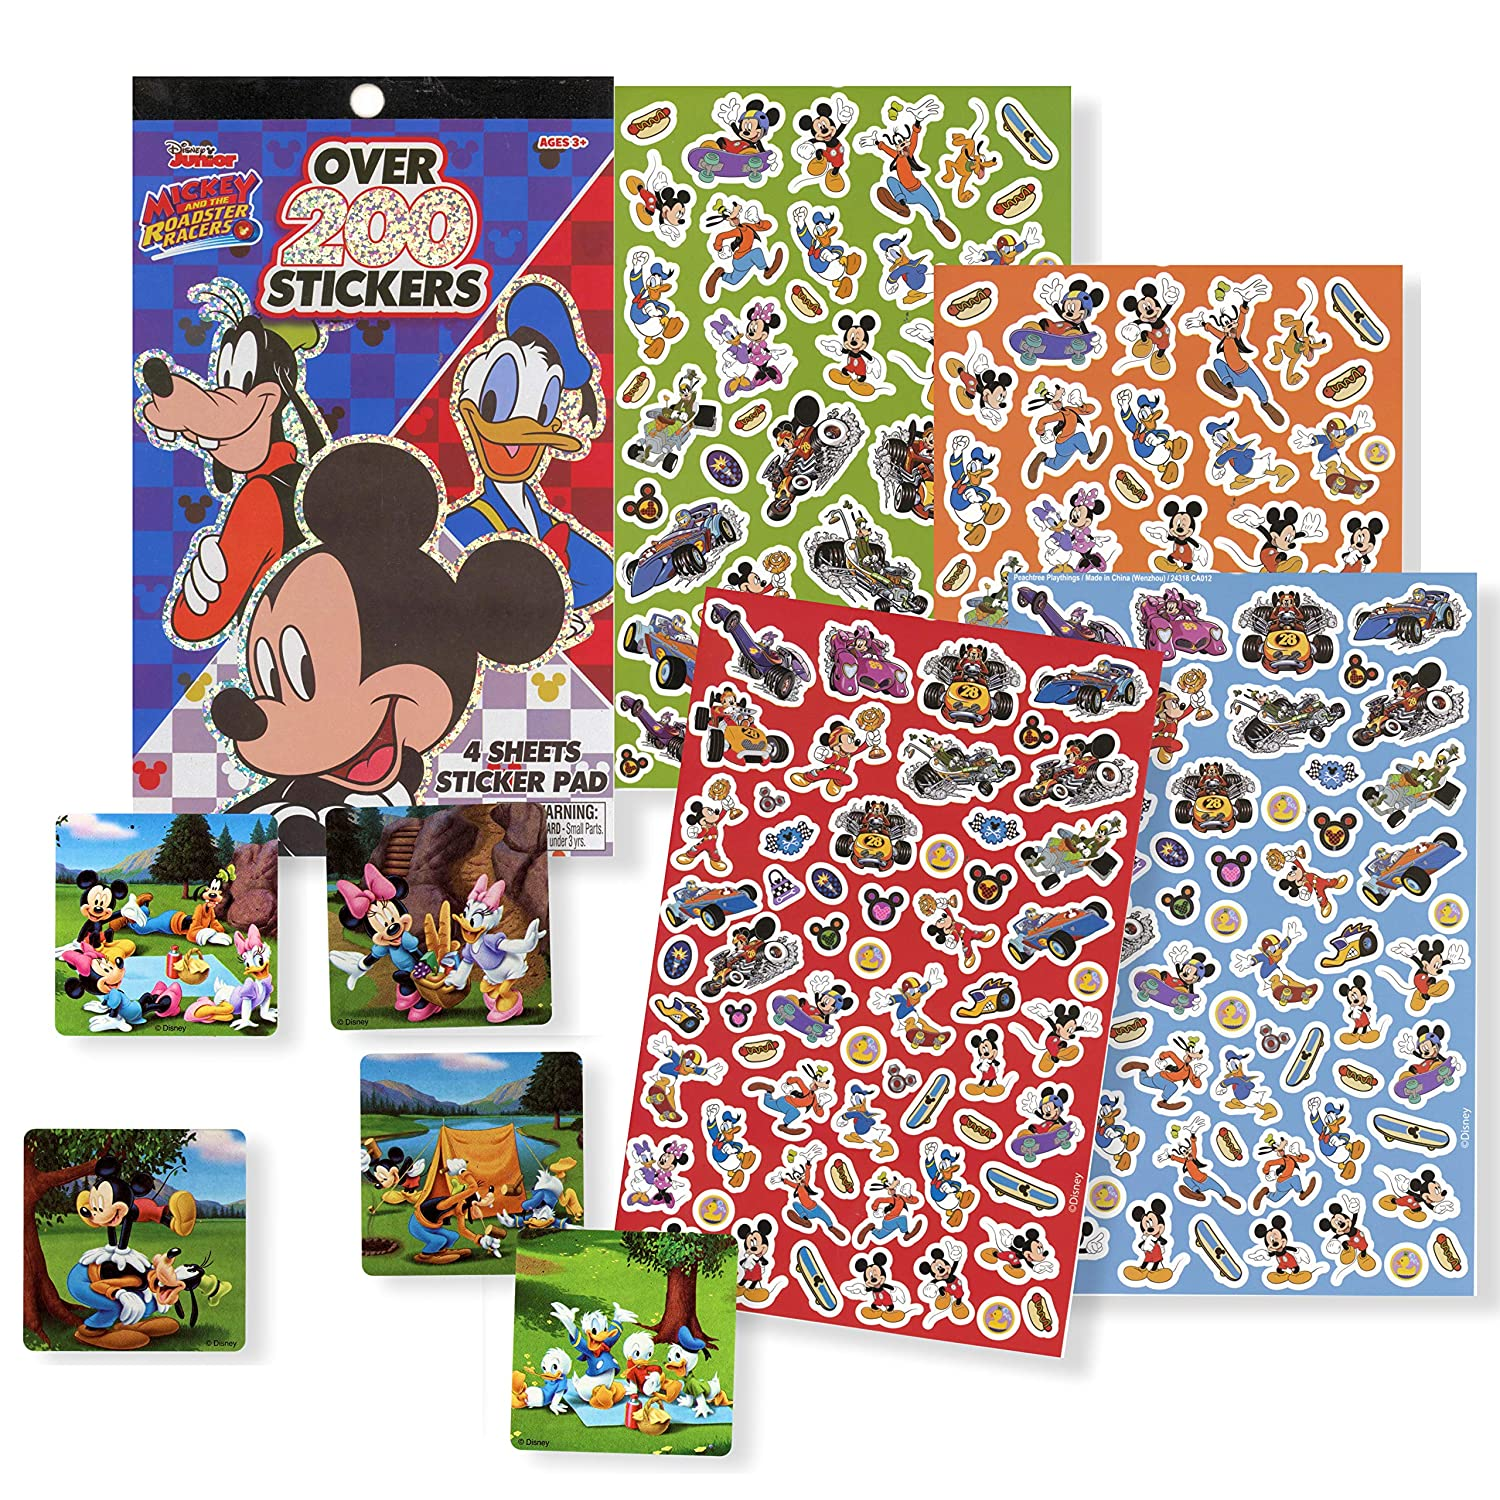 Giant 192 Page Coloring Book with Stickers Donald Duck Bundle Sealed in Gift Bag Disney Coloring Books for Kids with Stickers